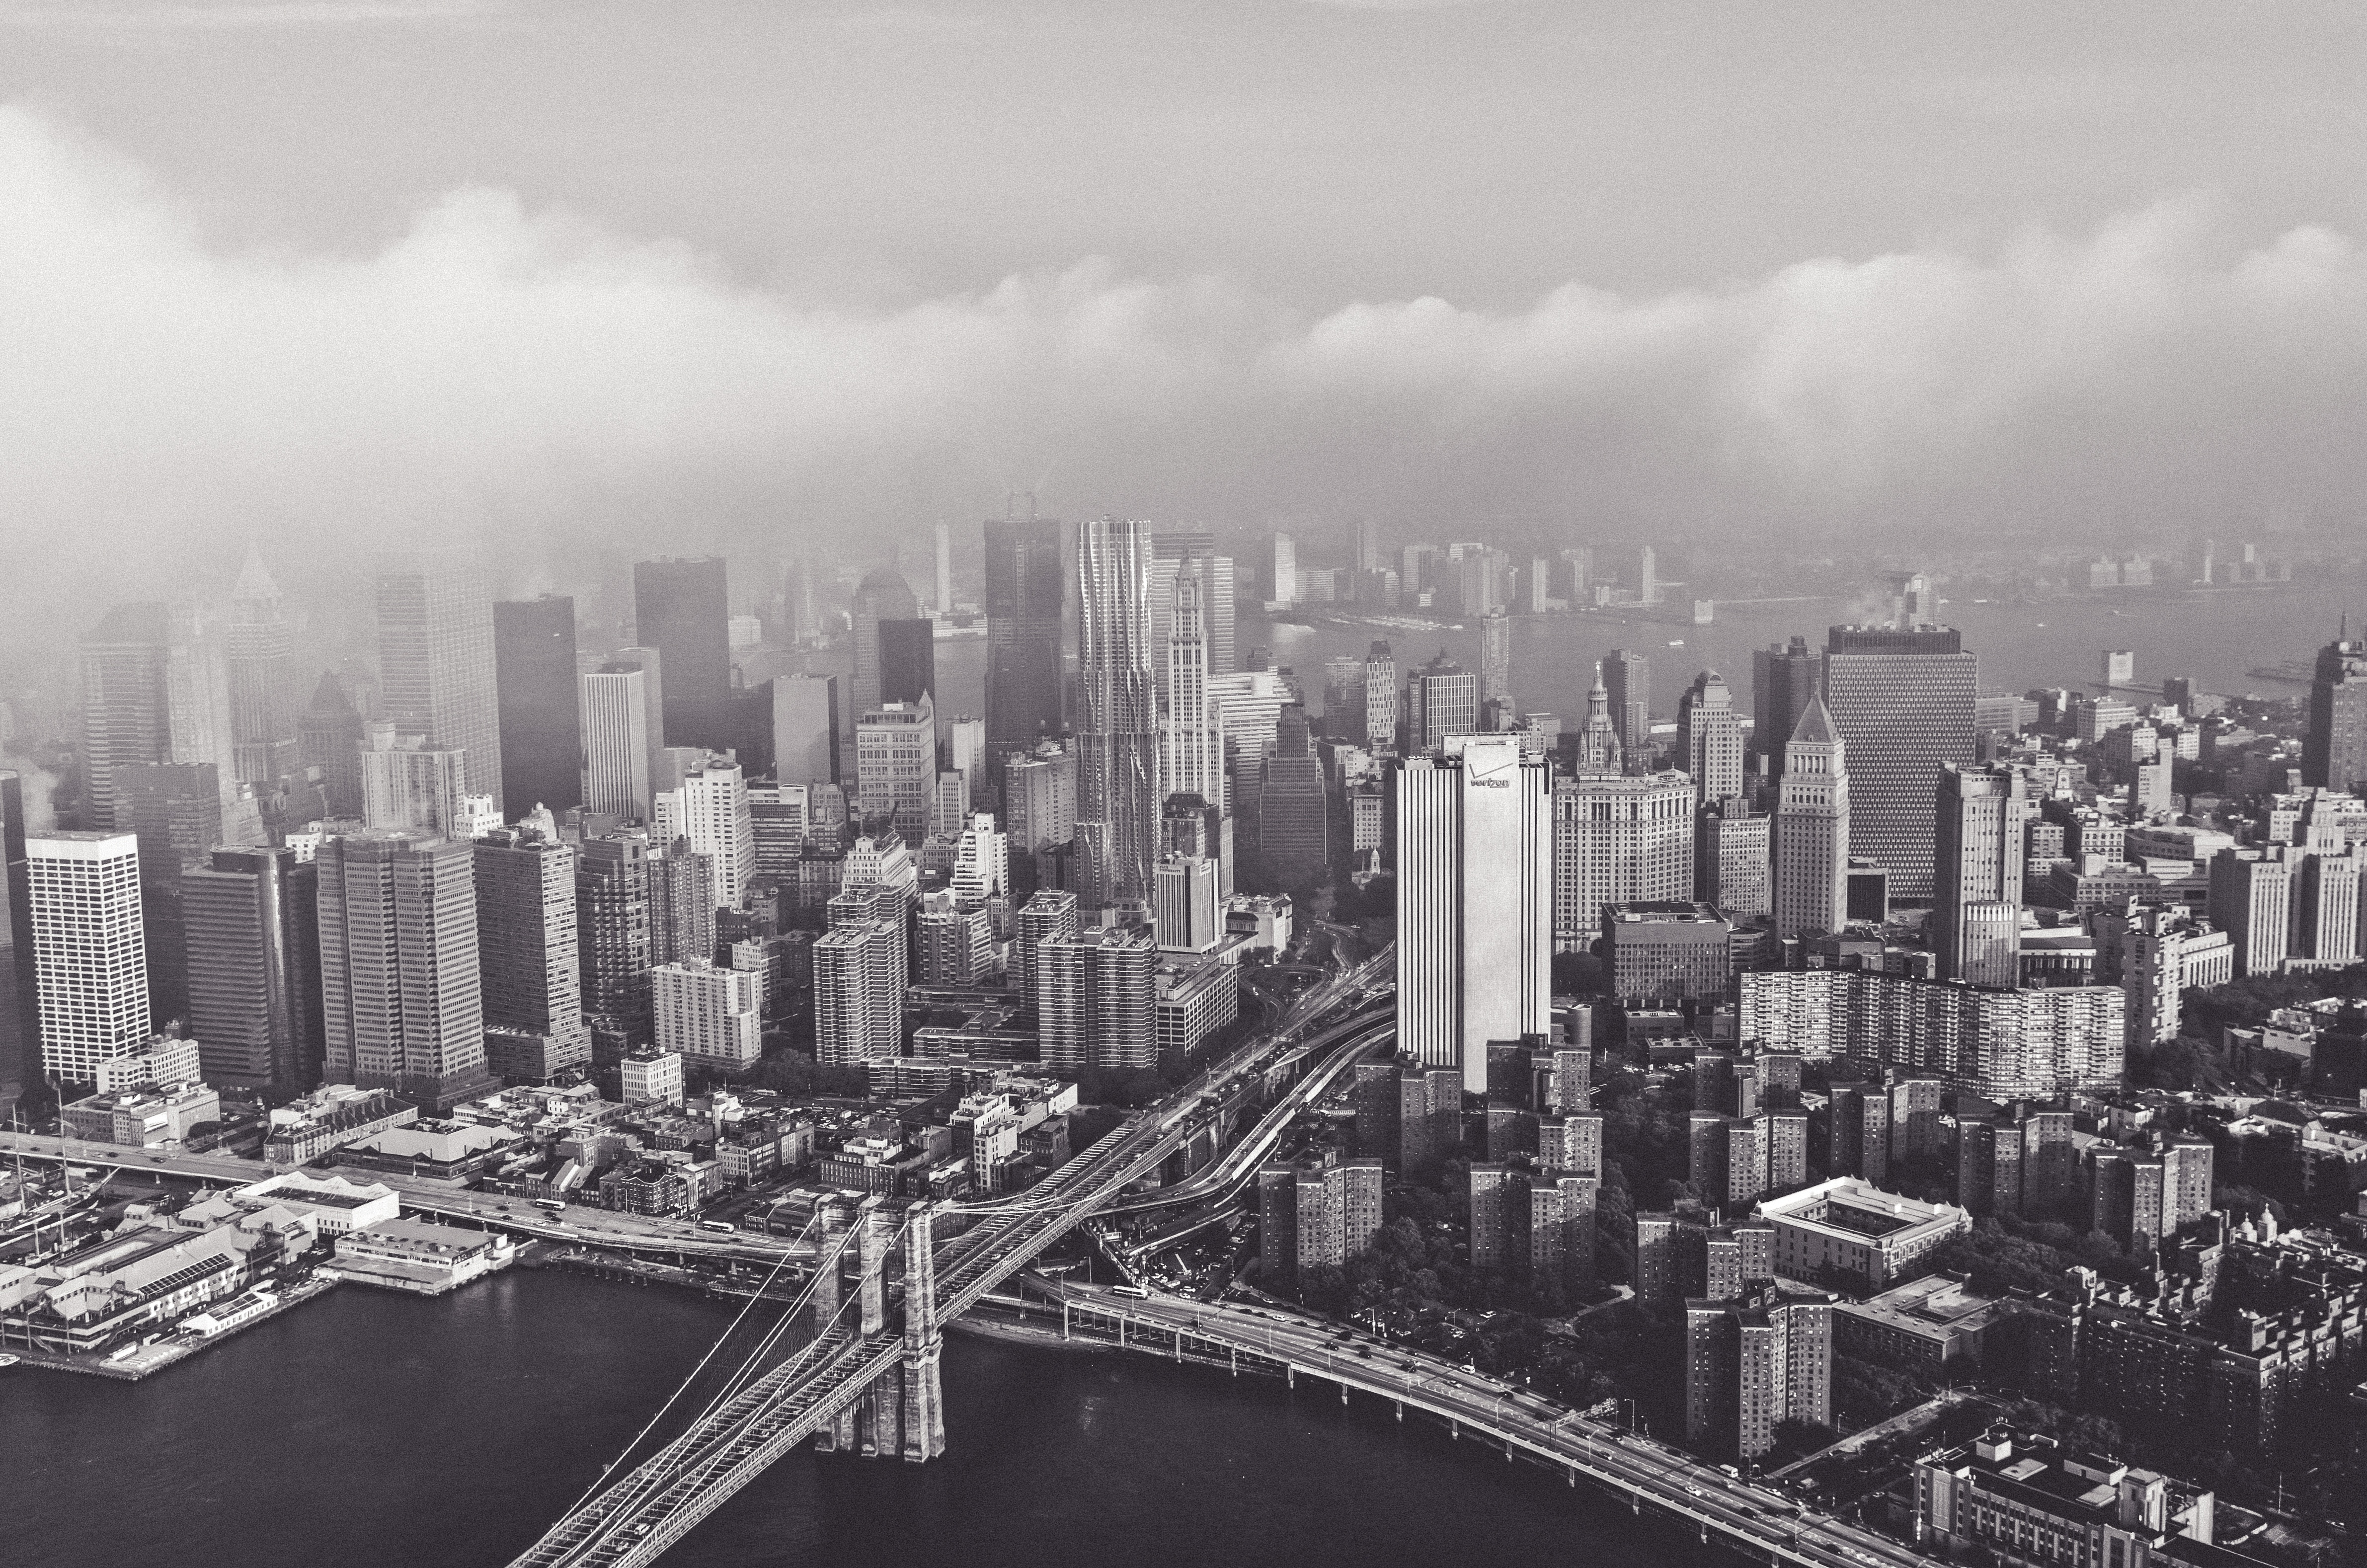 an image of new york in black and white